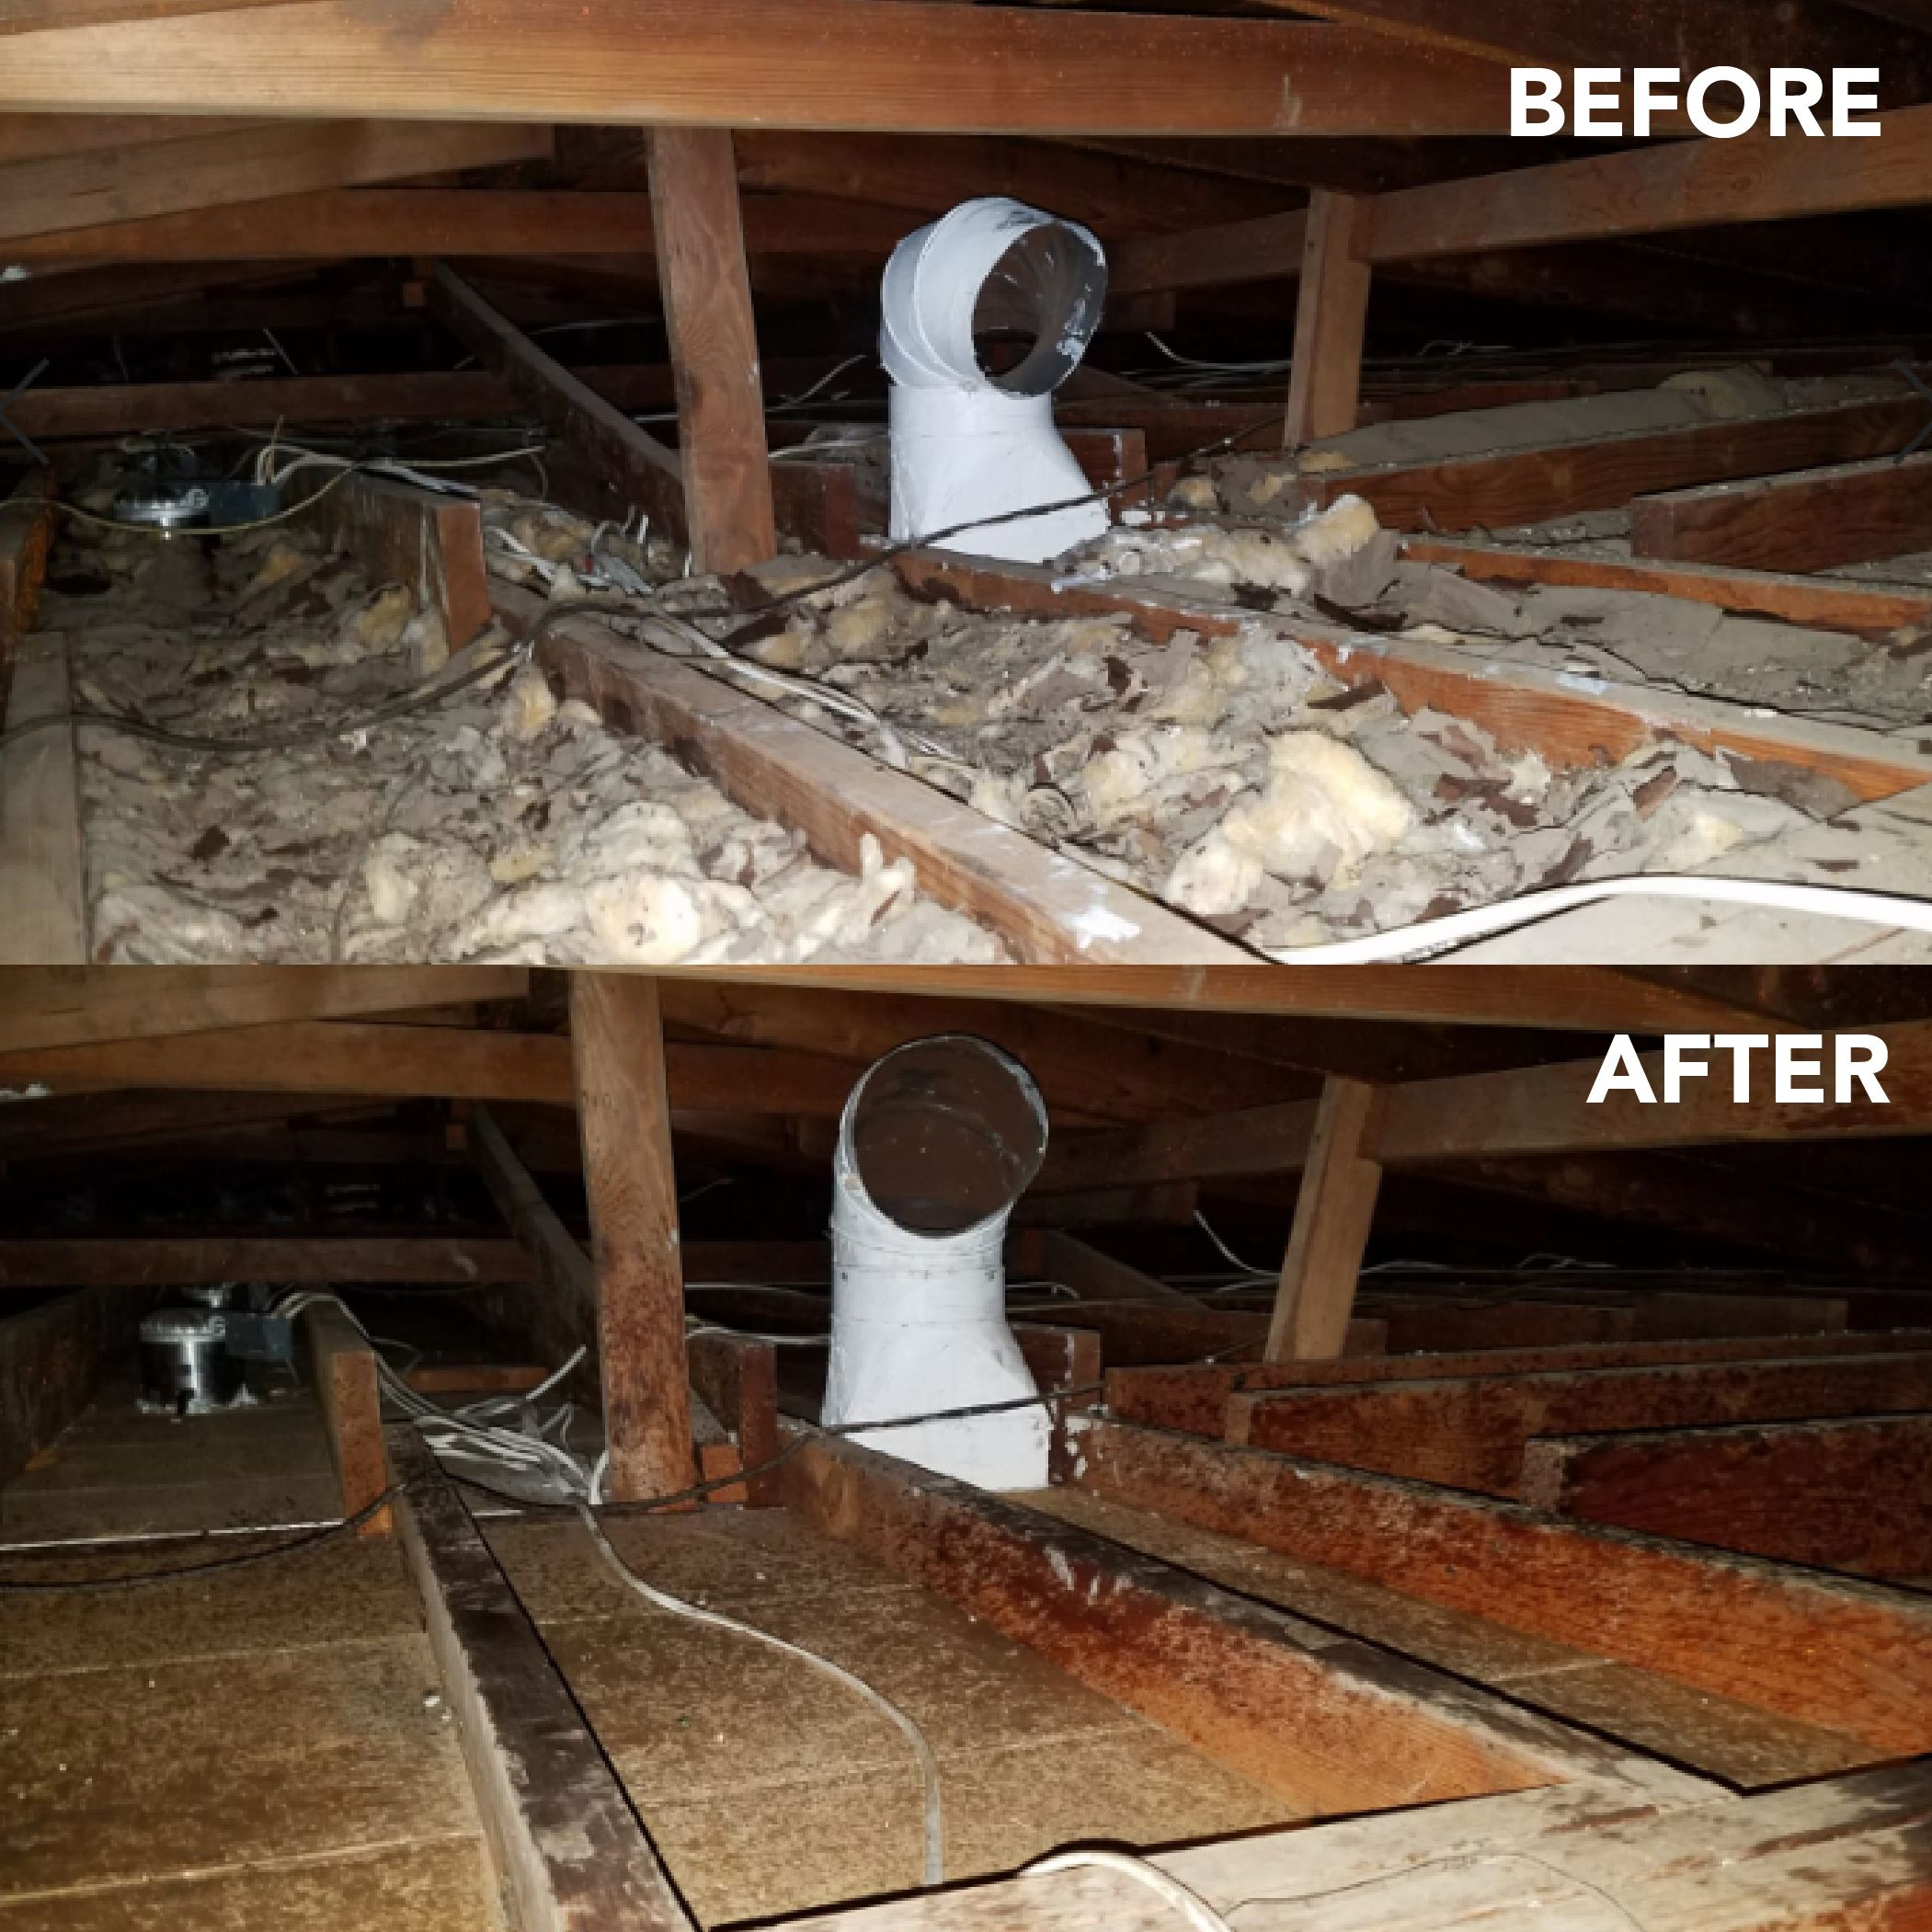 insulation removal and disposal by Attic solutions